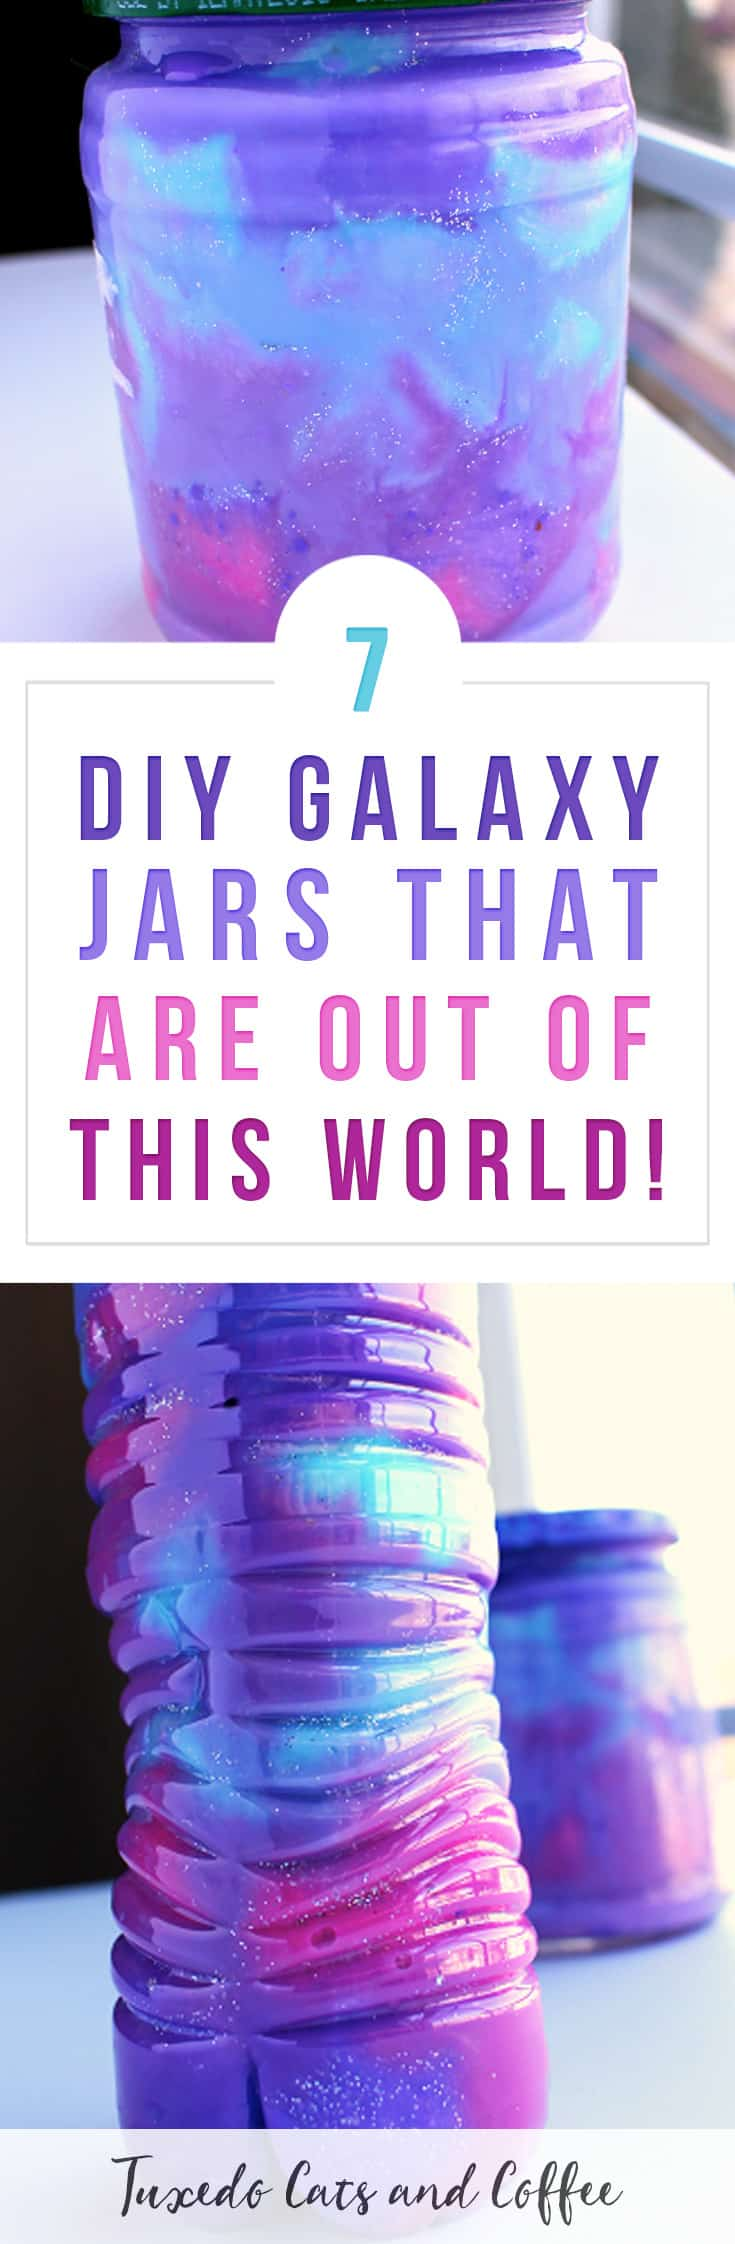 Galaxy jars, galaxy bottles, or nebula jars are a fun craft that uses cotton balls and paint to create your own pretty little galaxy in a jar! Here are 7 DIY galaxy jars that are out of this world.